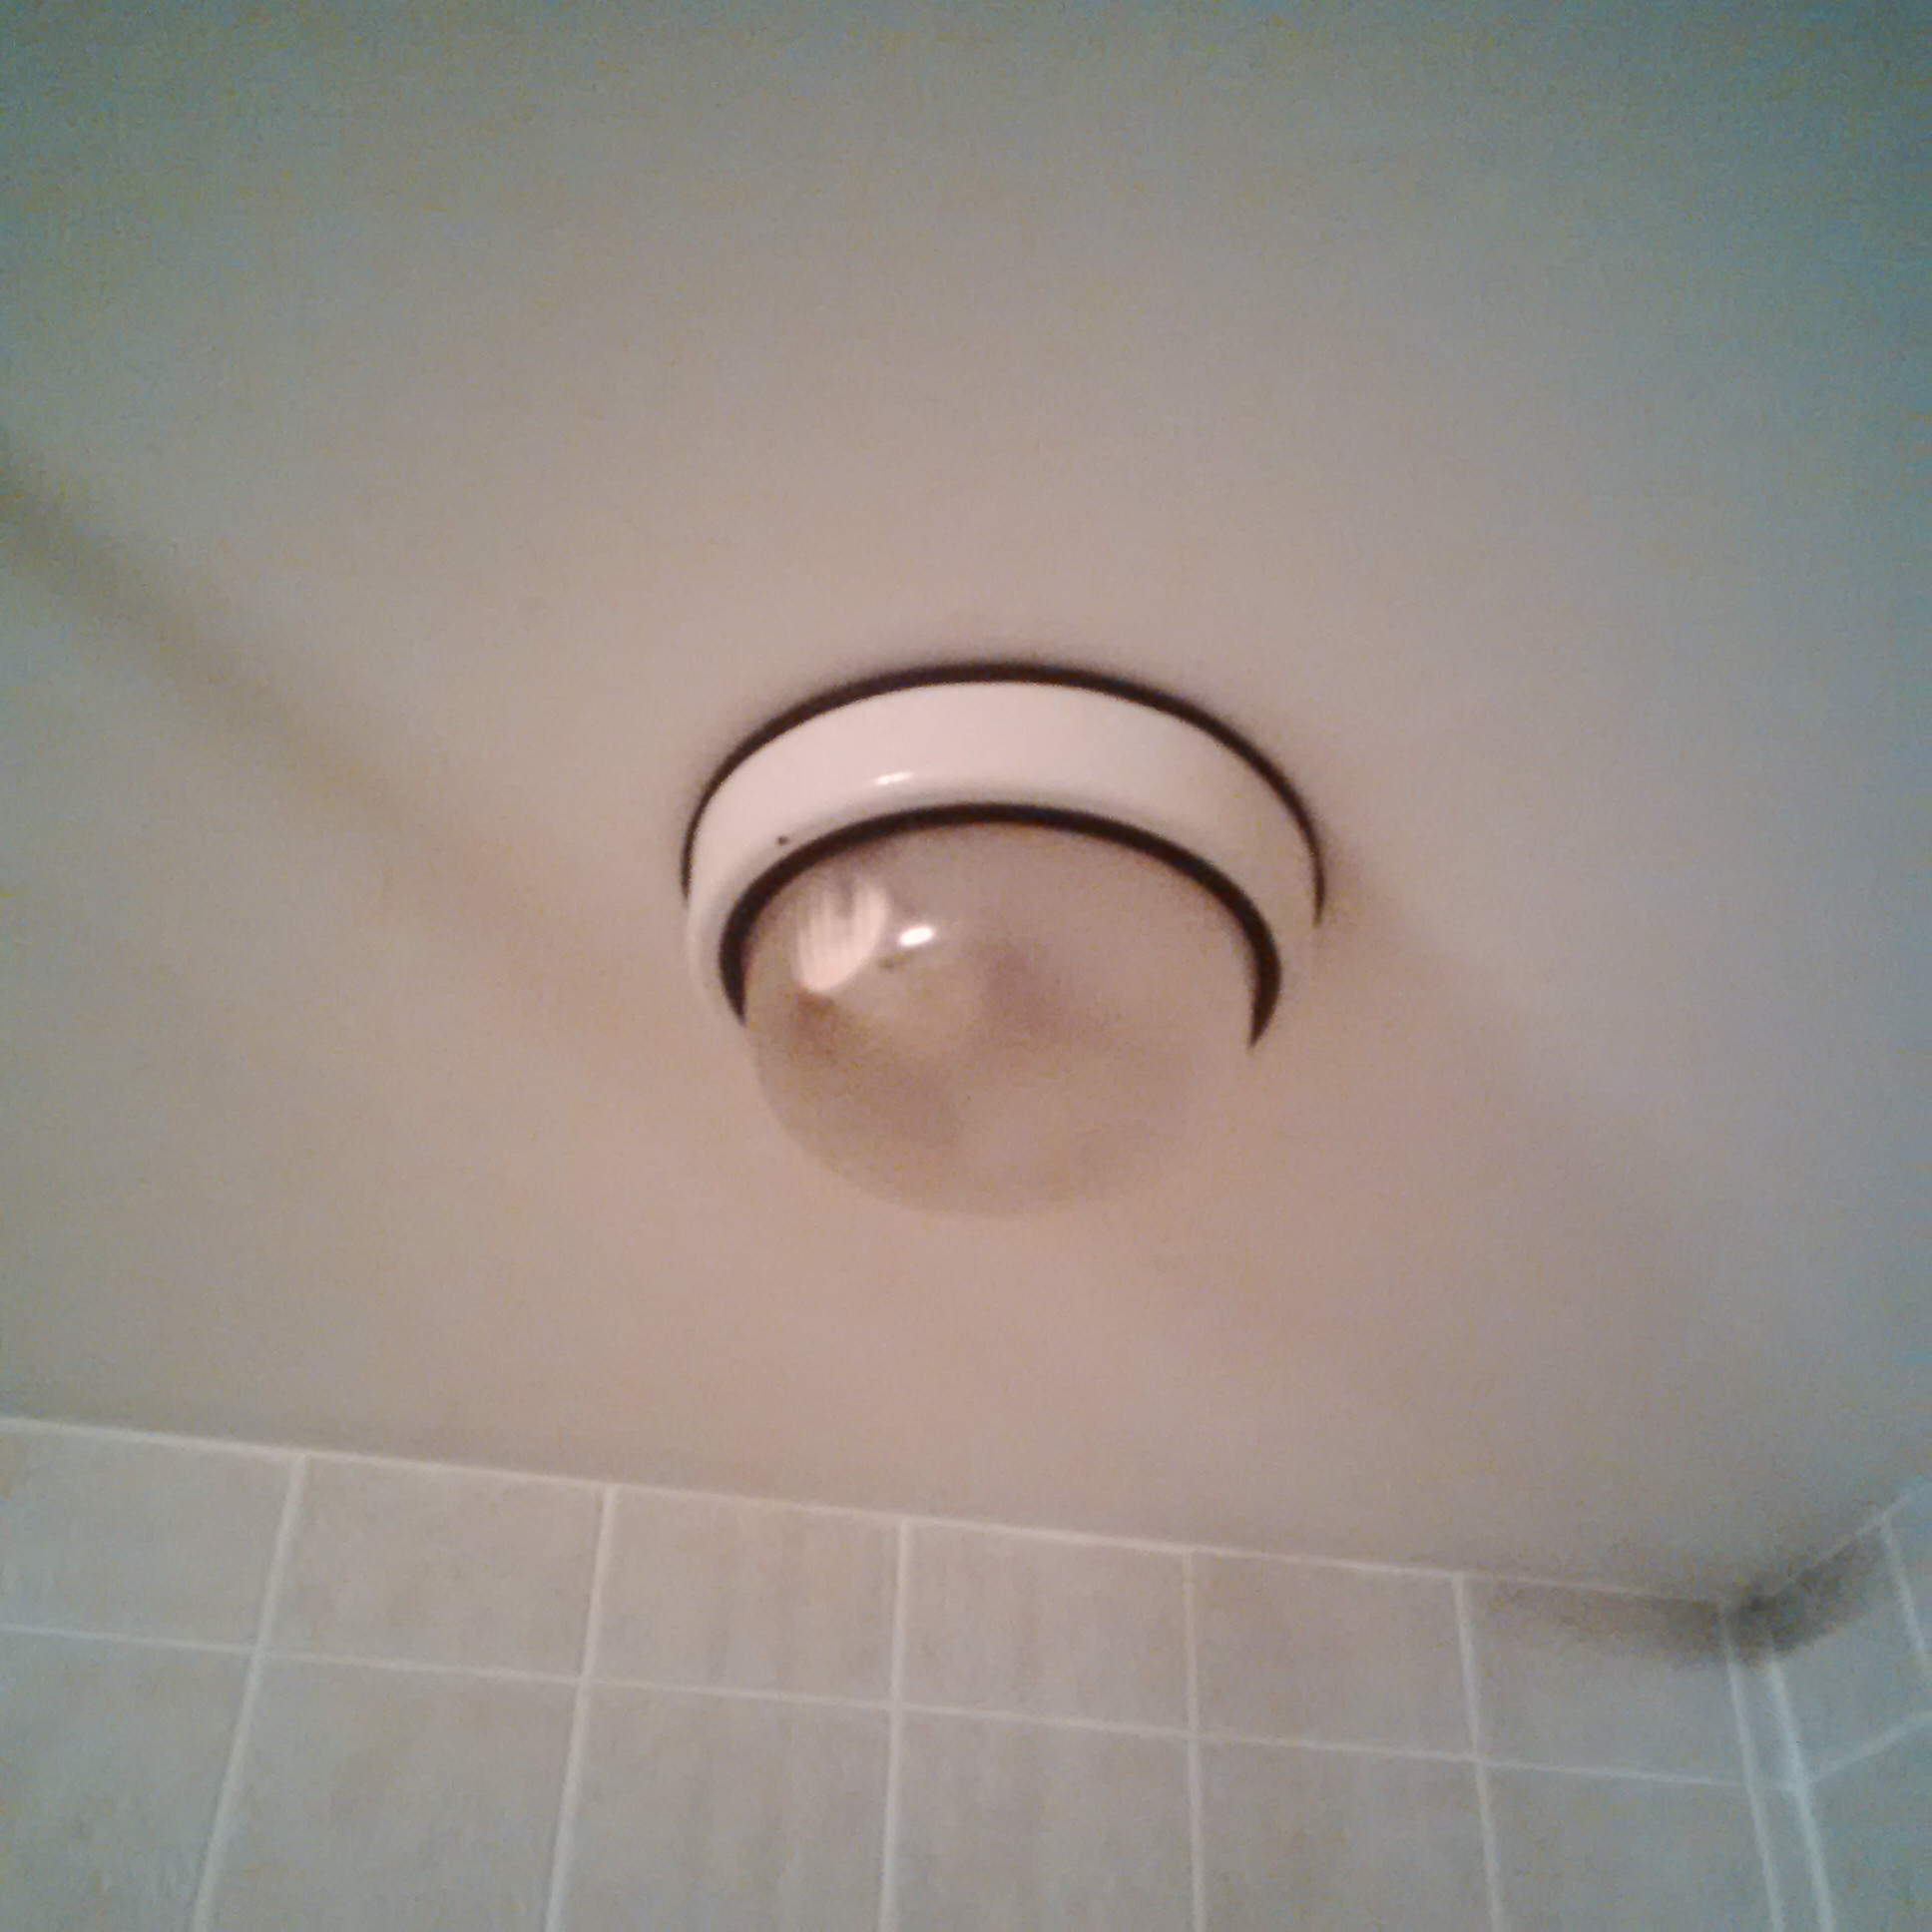 Bathroom Light Fixtures Damp Location Bathroom - Changing Bulb In Shower Ceiling Light Fixture